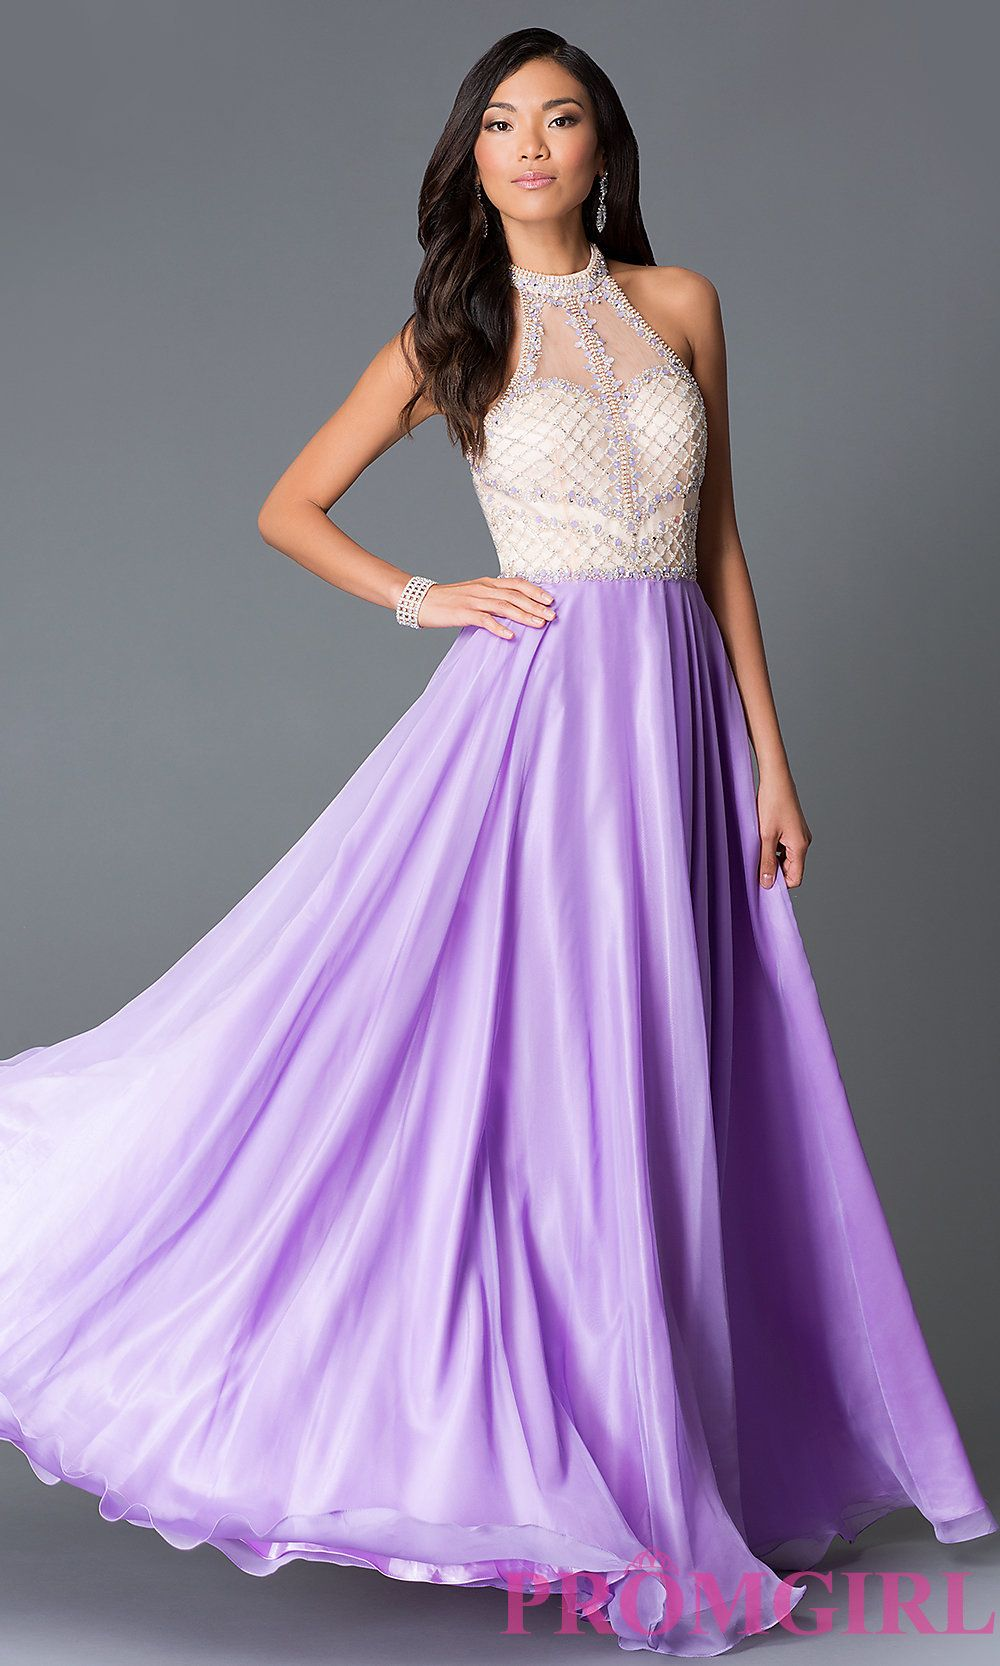 Wedding Lilac Prom Dresses na 8201l sheer back high neck long lilac prom dress dress